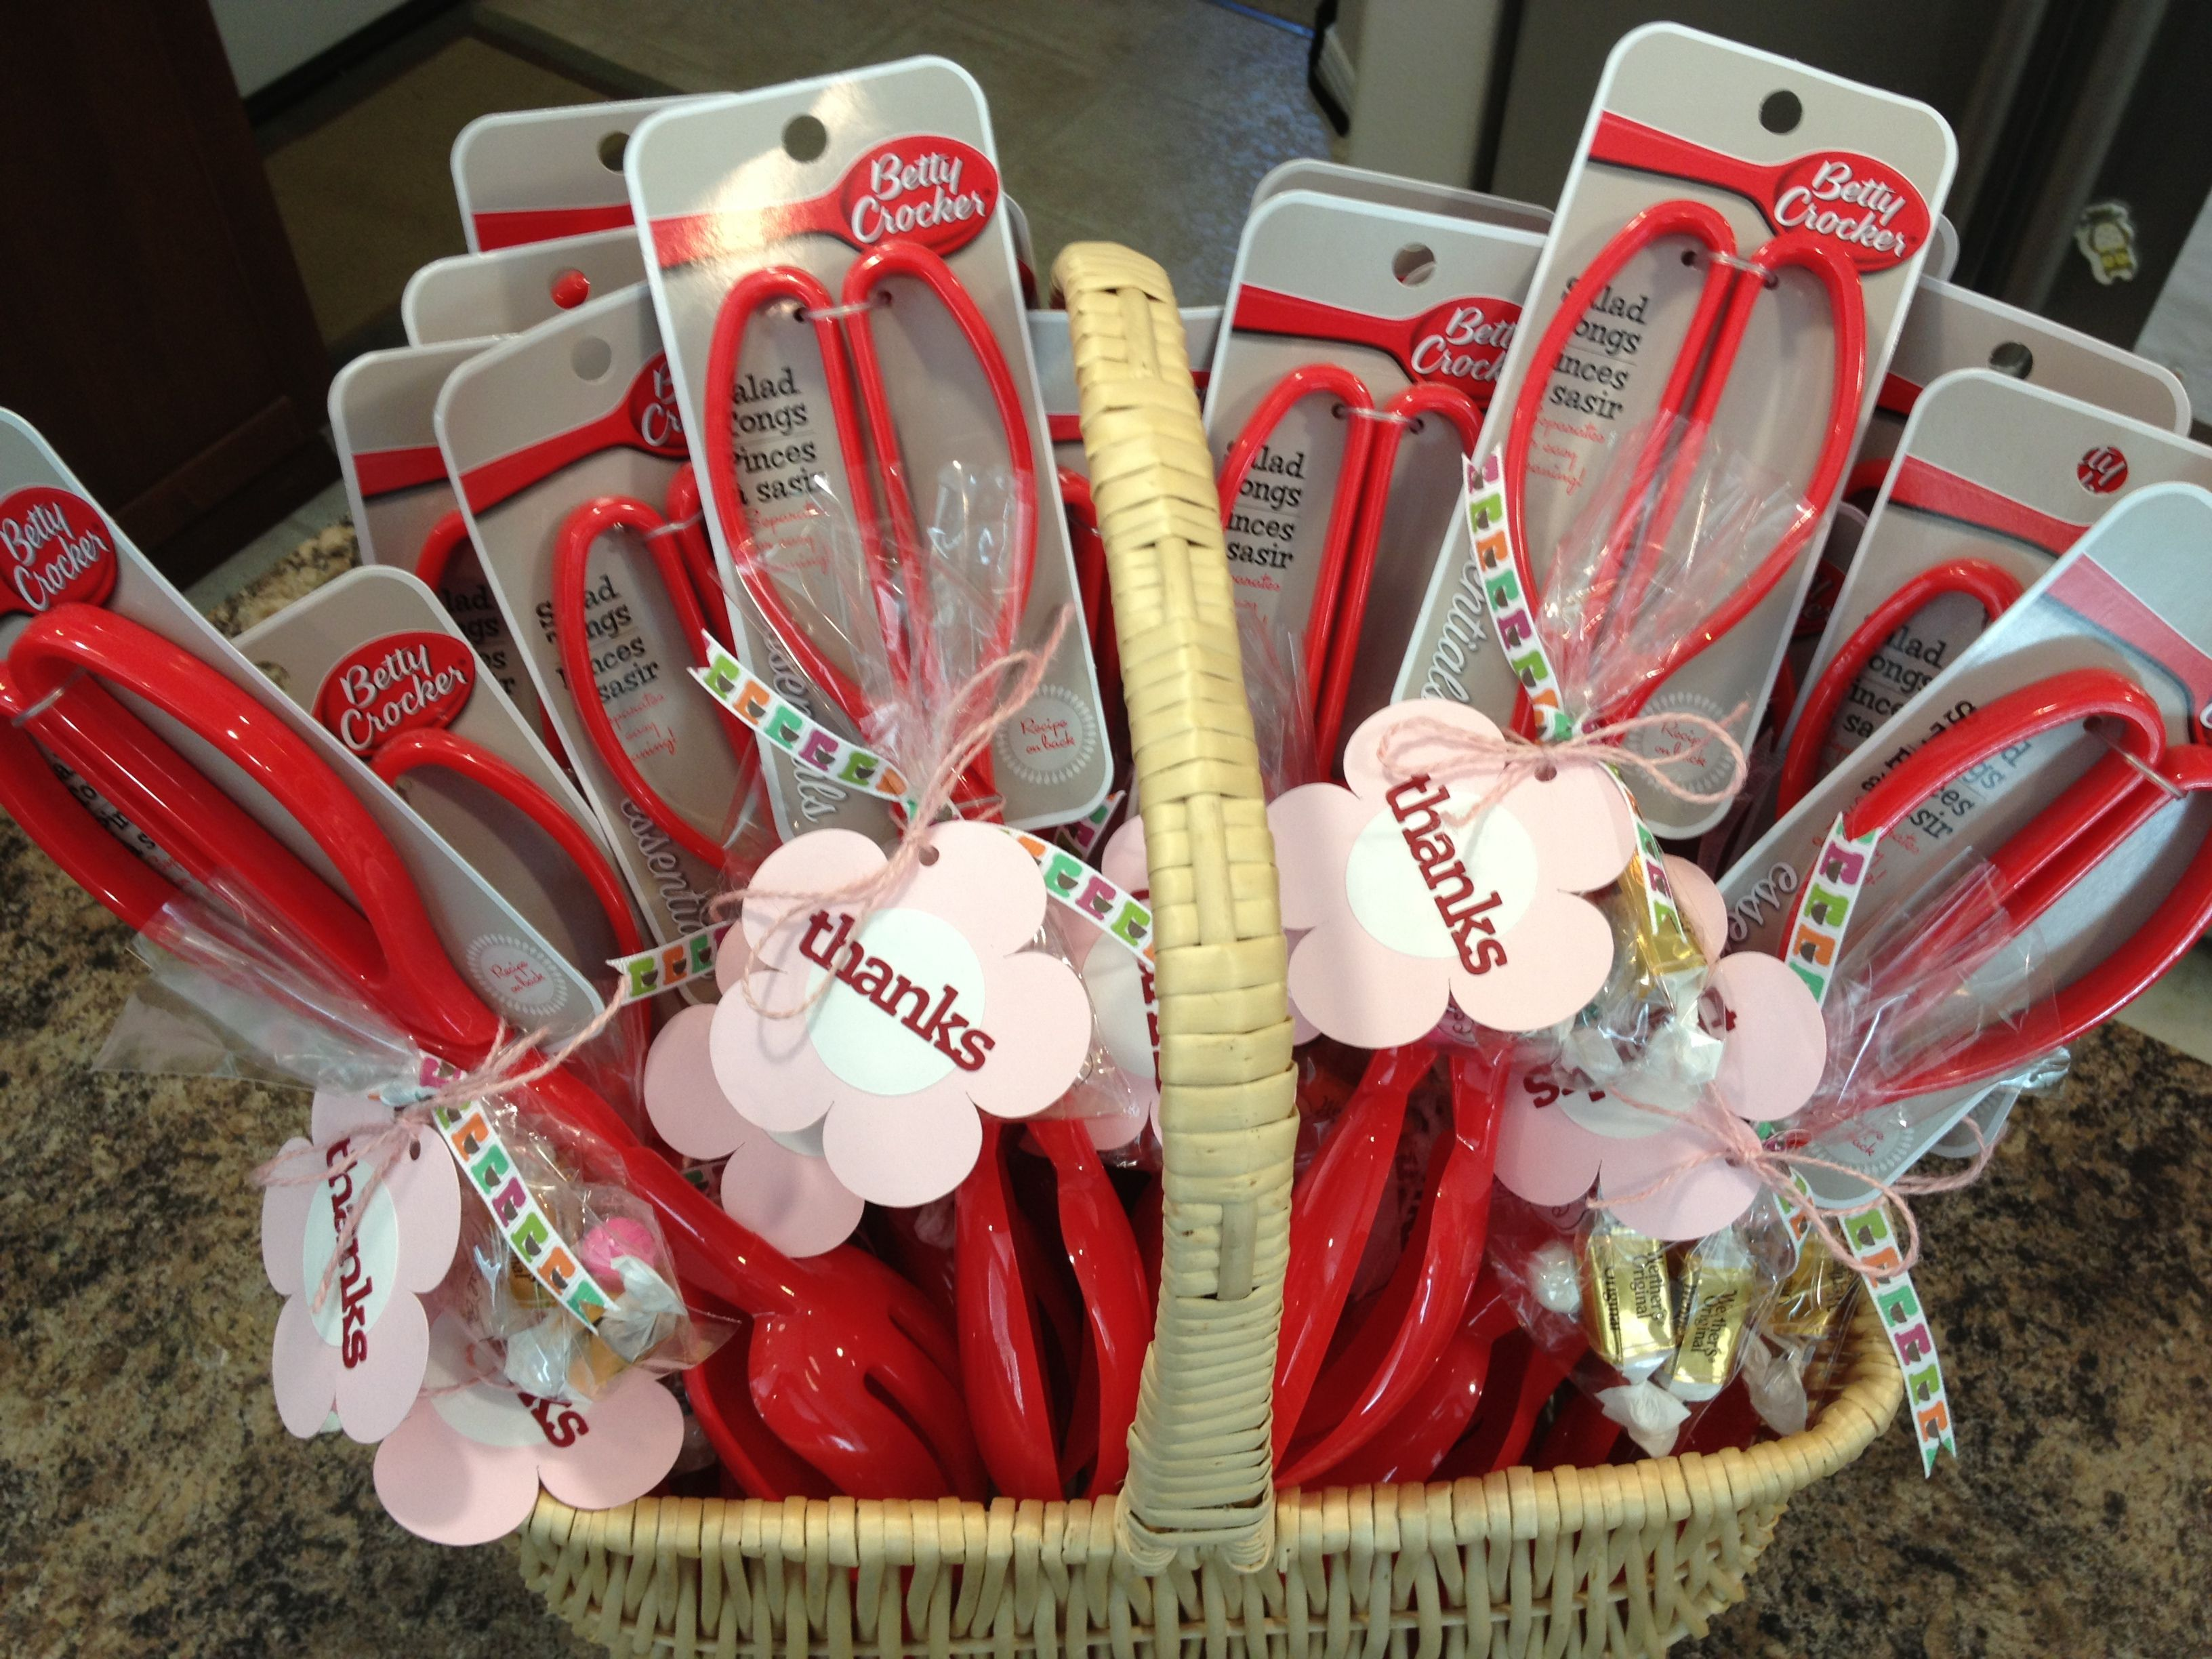 Kitchen Wedding Gifts: Favors For Kitchen-themed Bridal Shower. Salad Tongs With